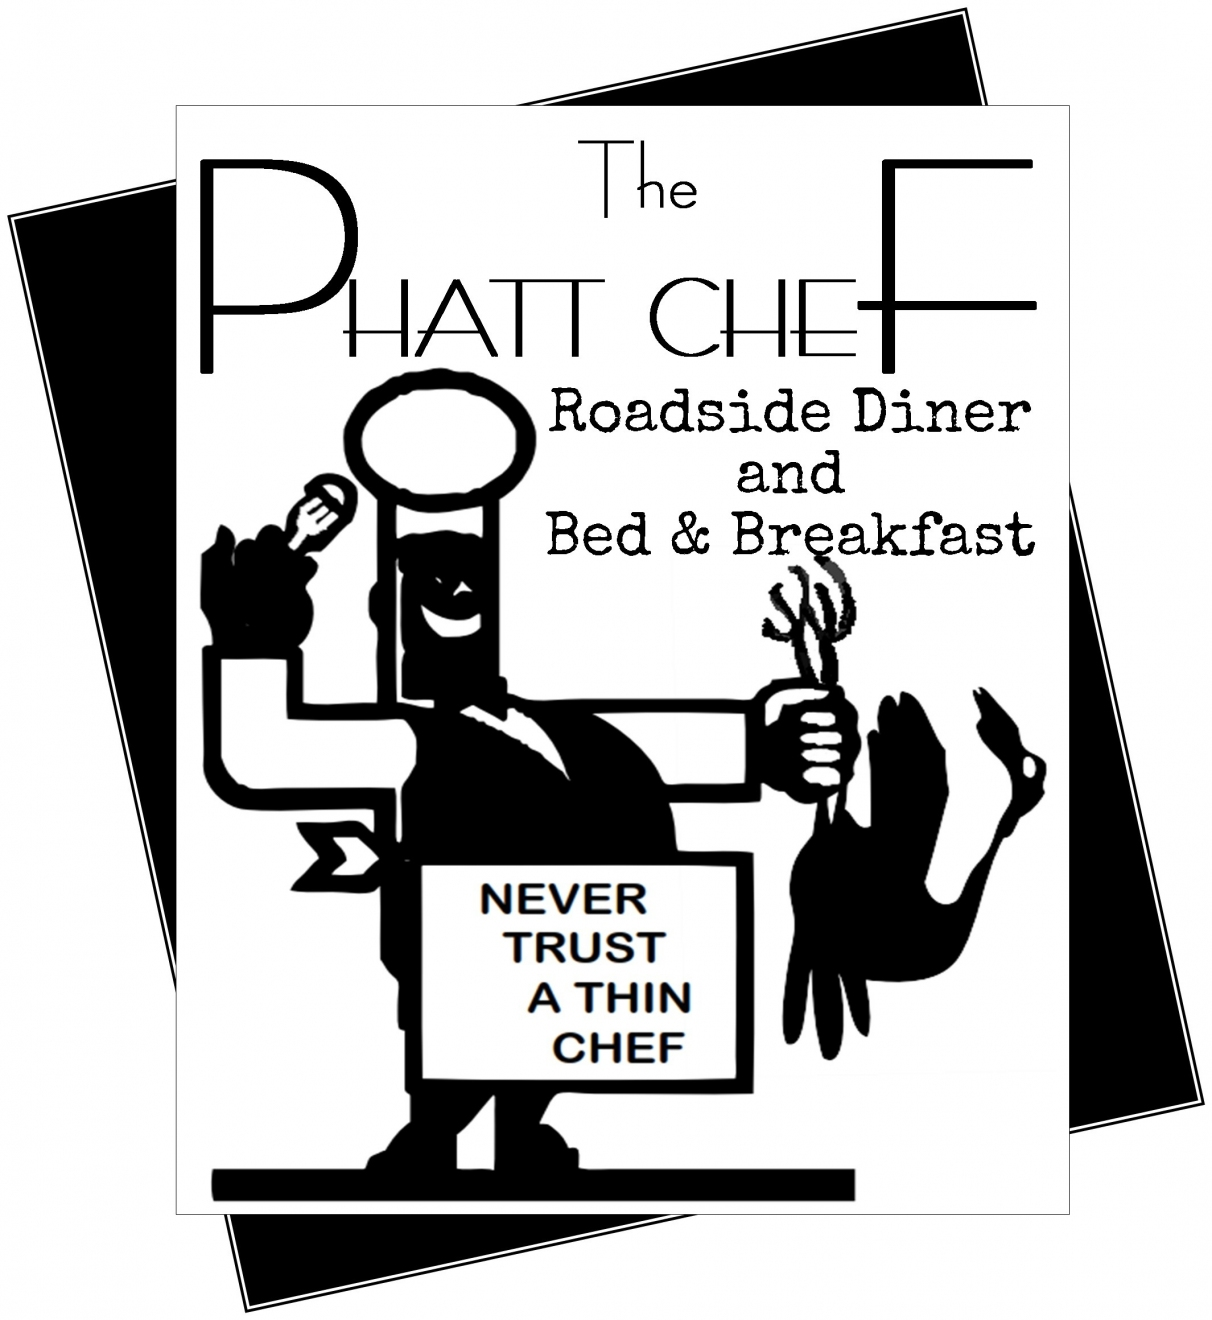 gallery/2014 phatt chef logo